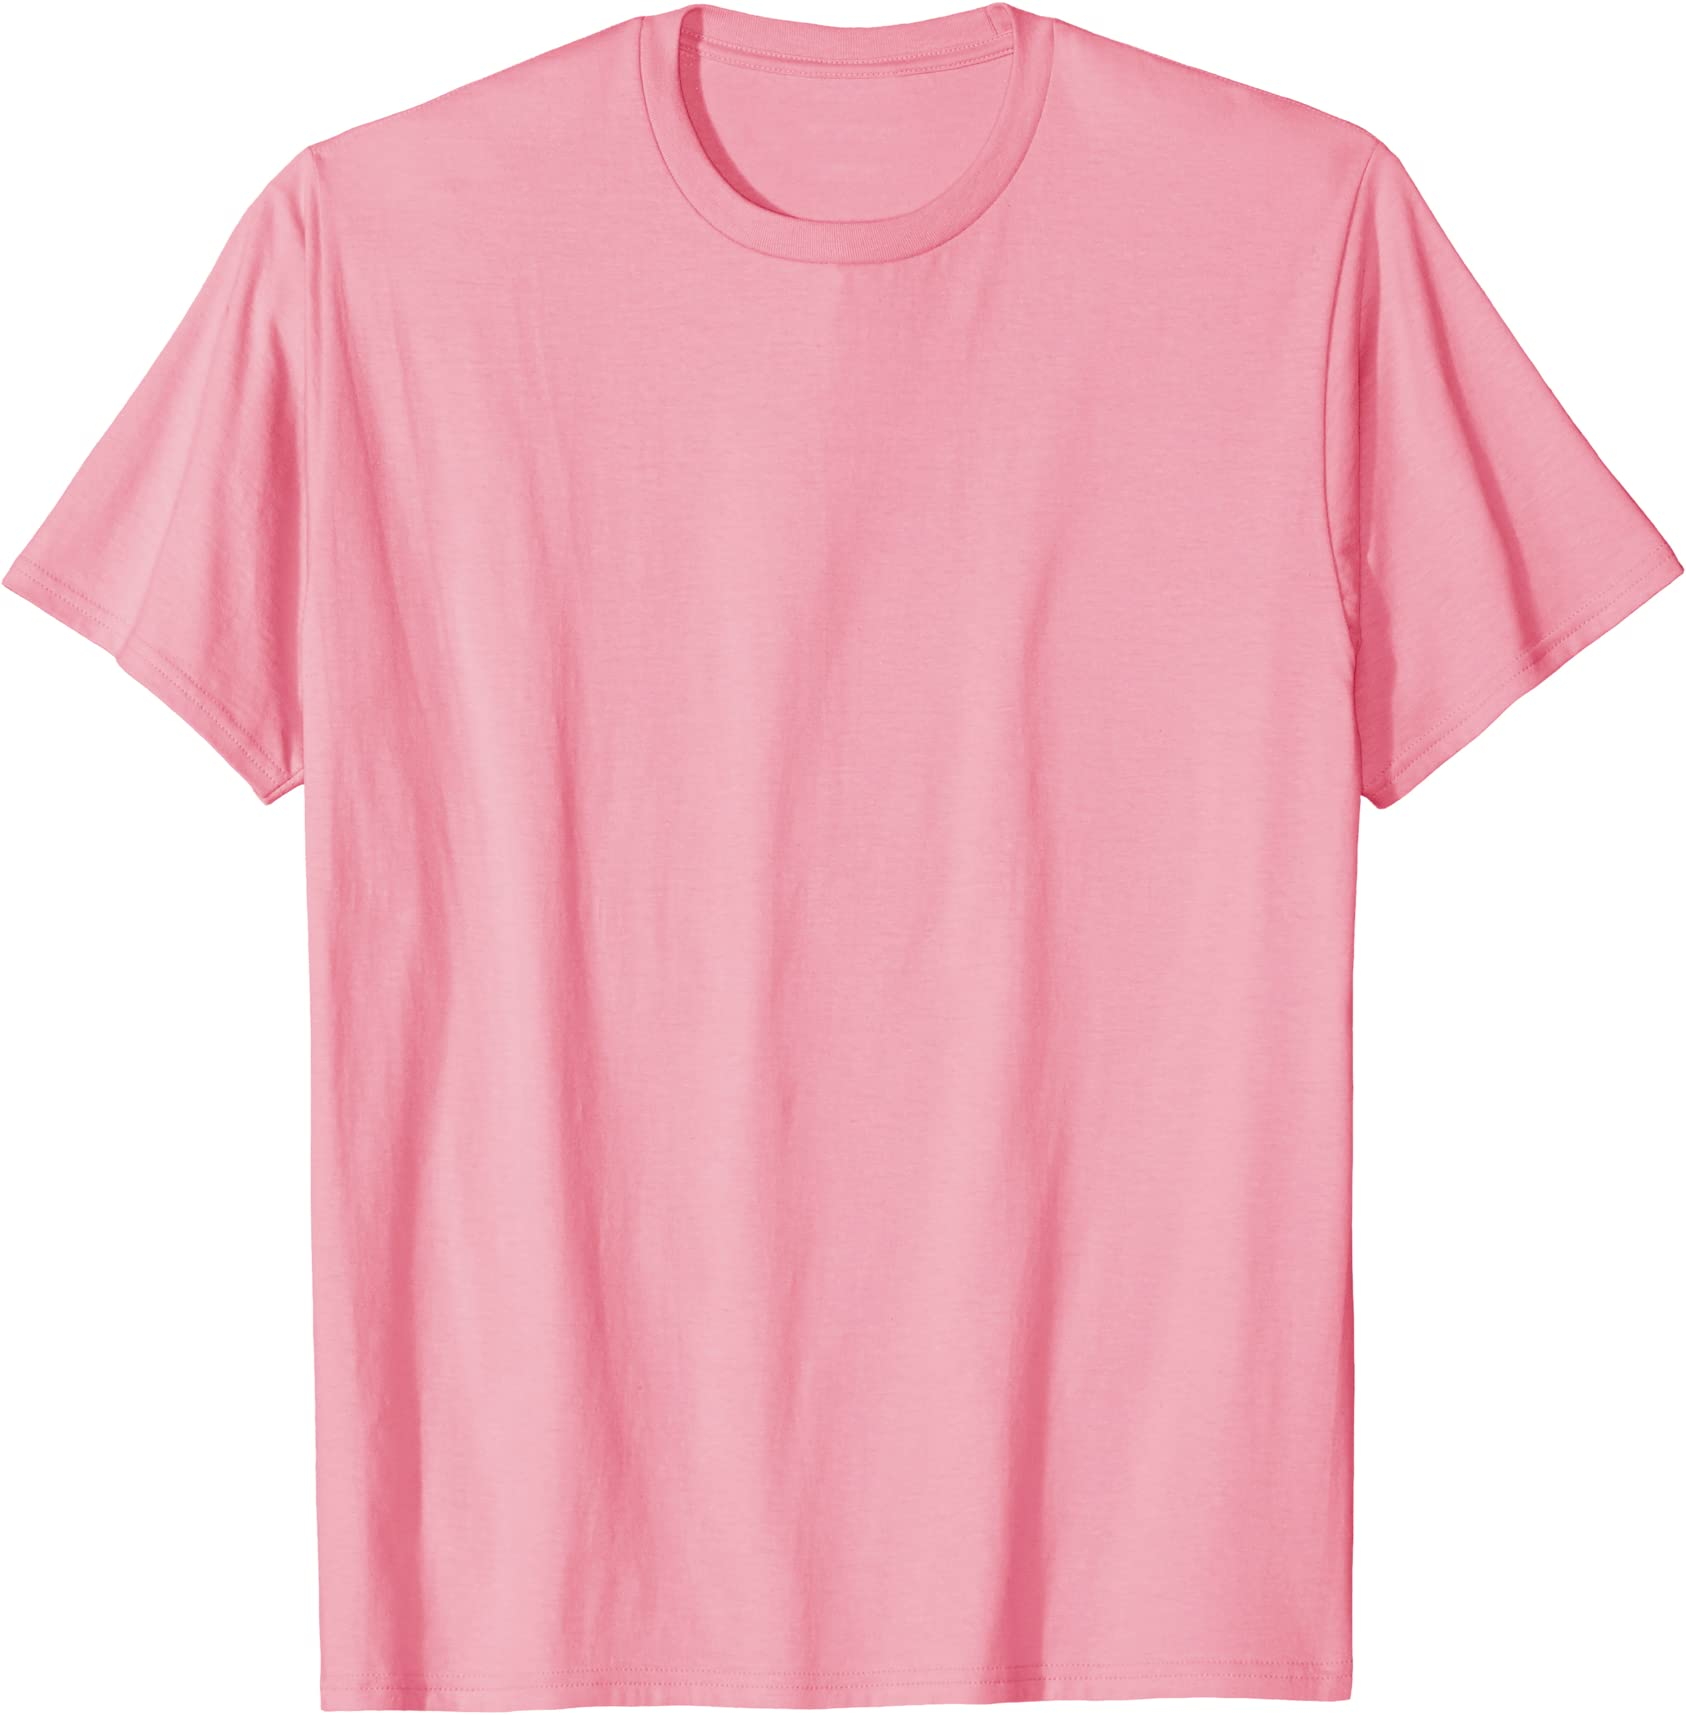 Canada 1867 Woman/'s Pink T-Shirt Size-L New